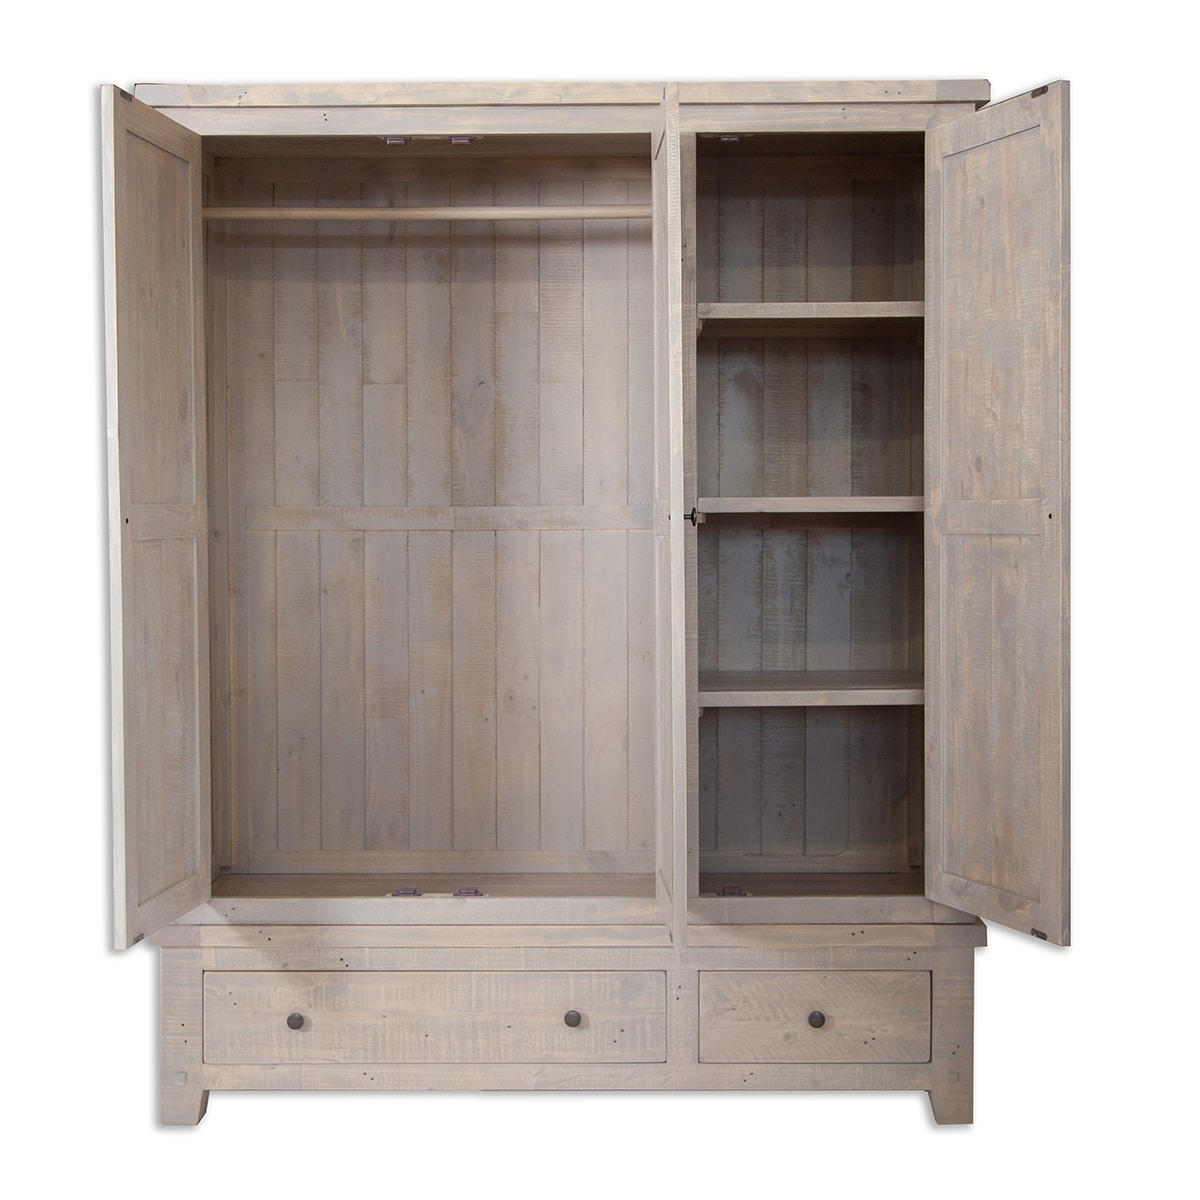 The Witterings Triple Wardrobe - WIT008b